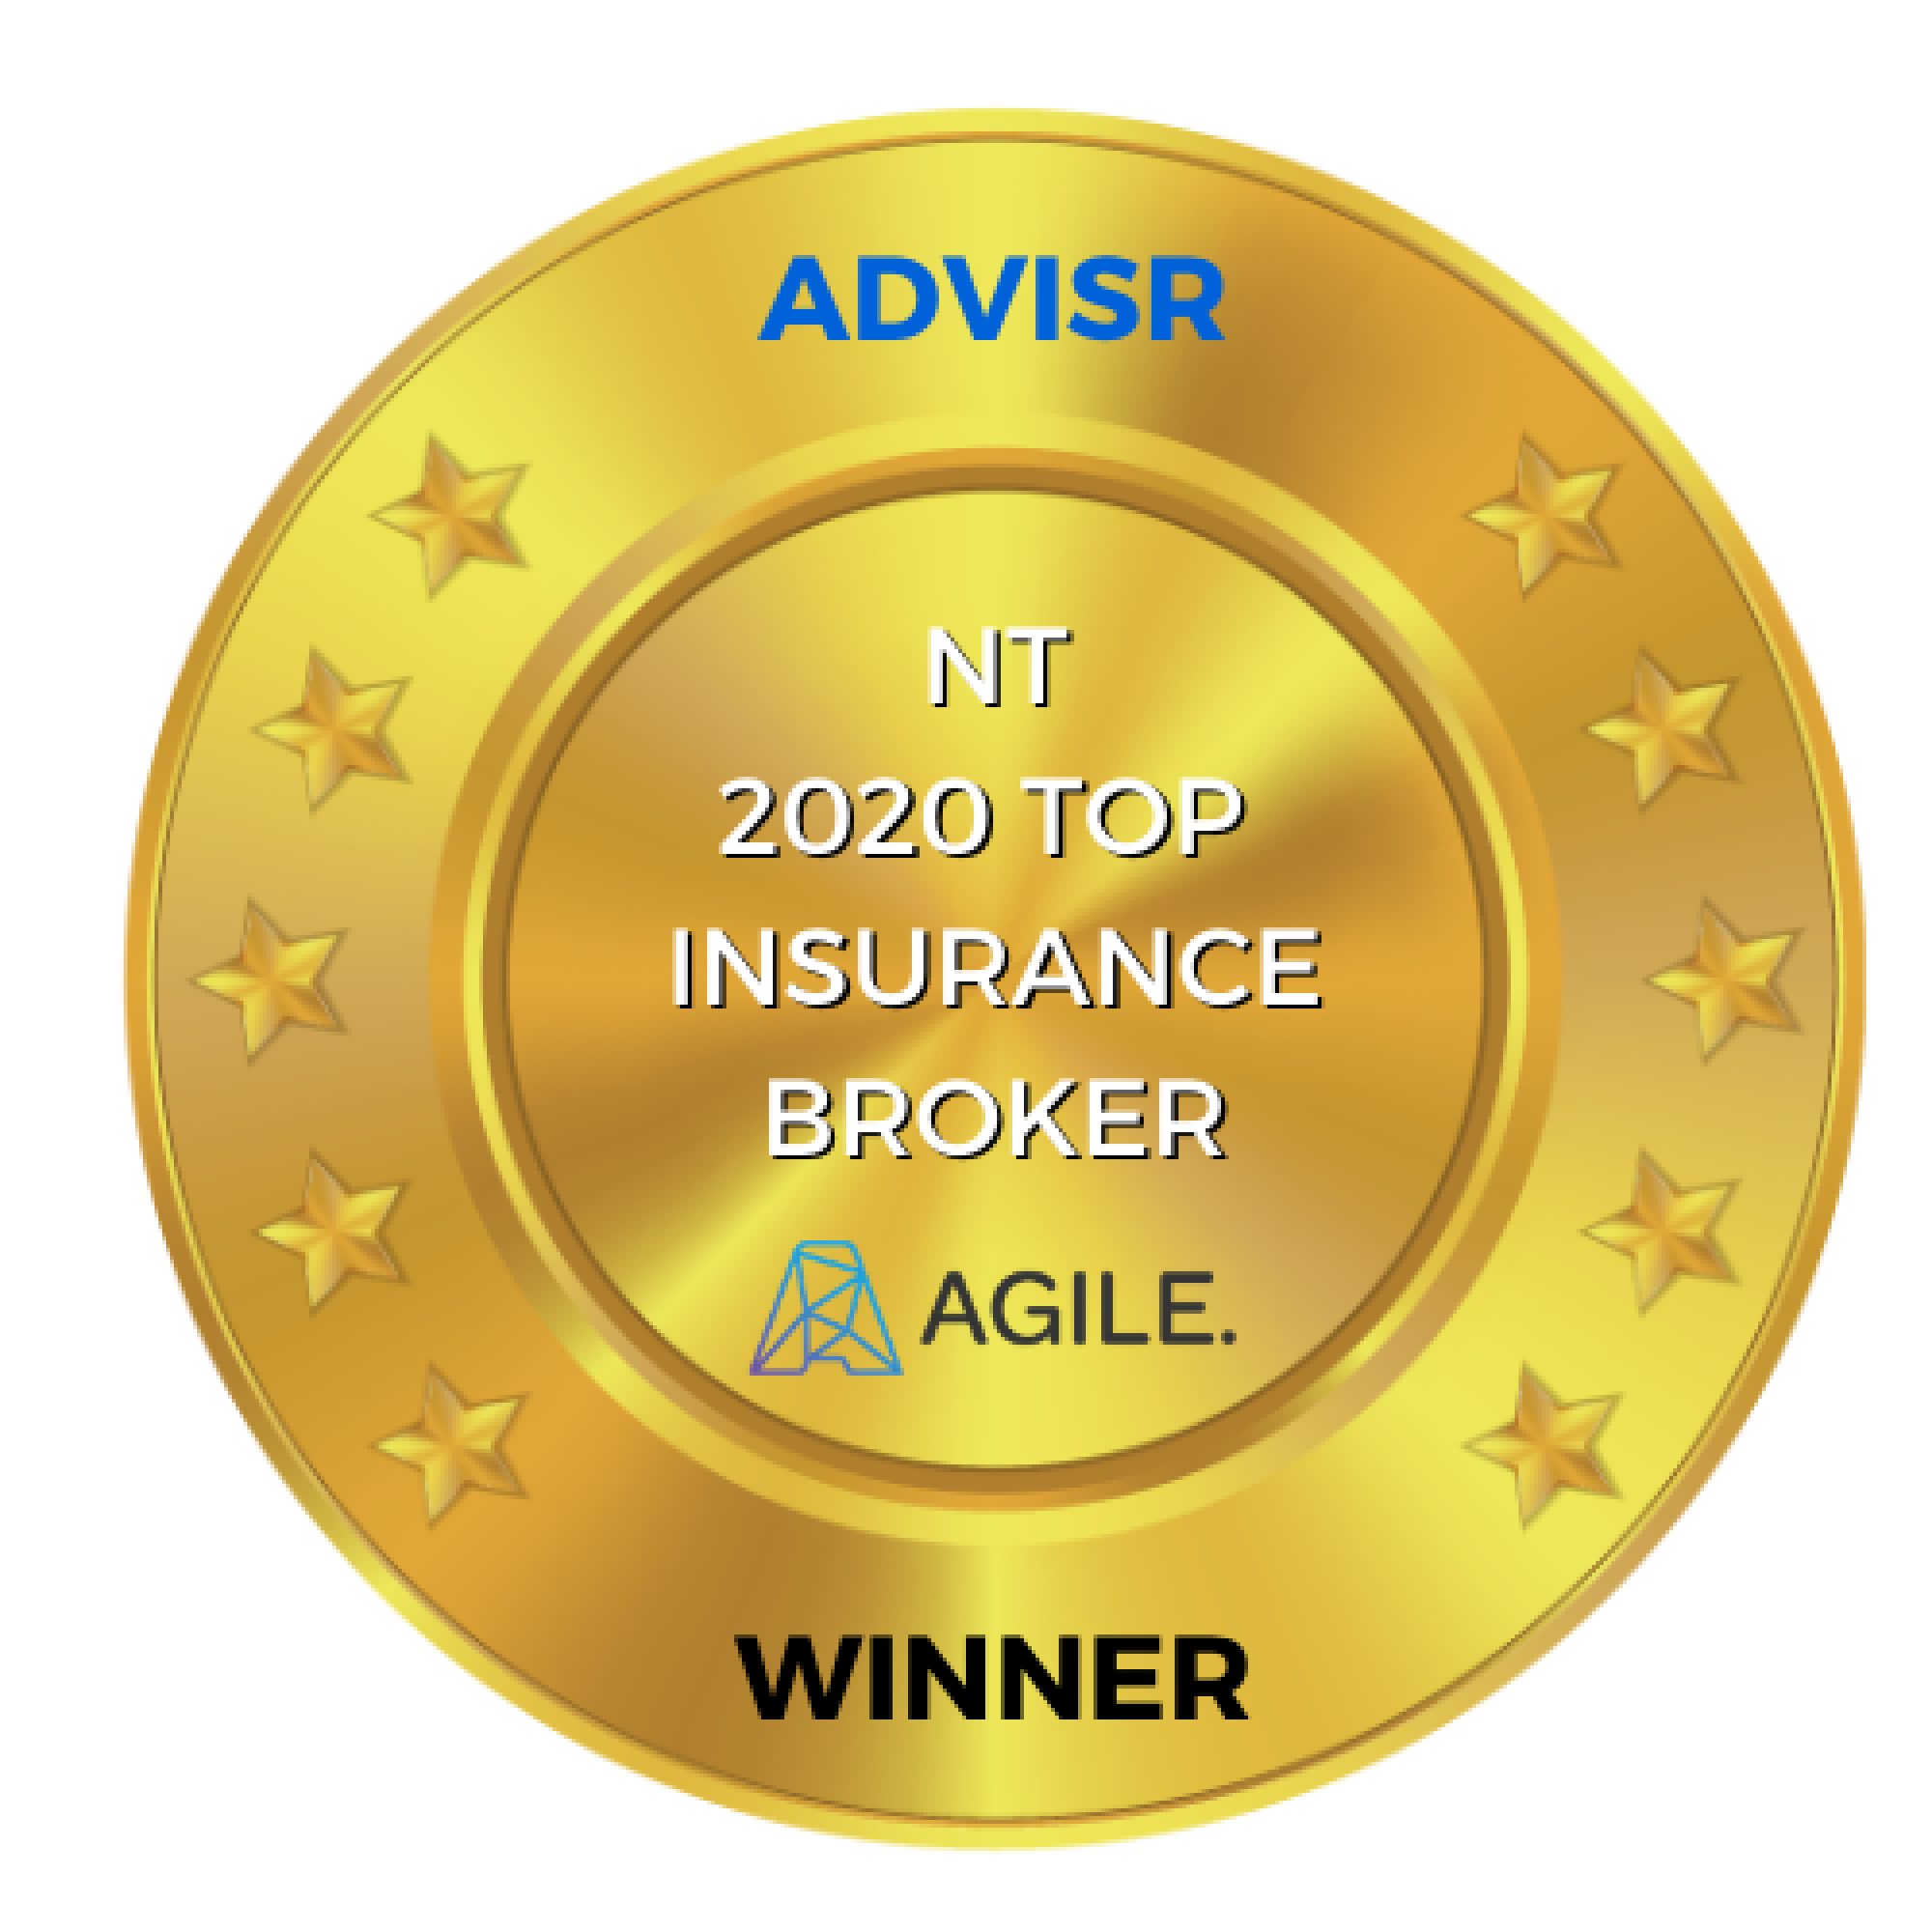 Northern Territory Top Insurance Broker Winner | Top Australian Insurance Broker